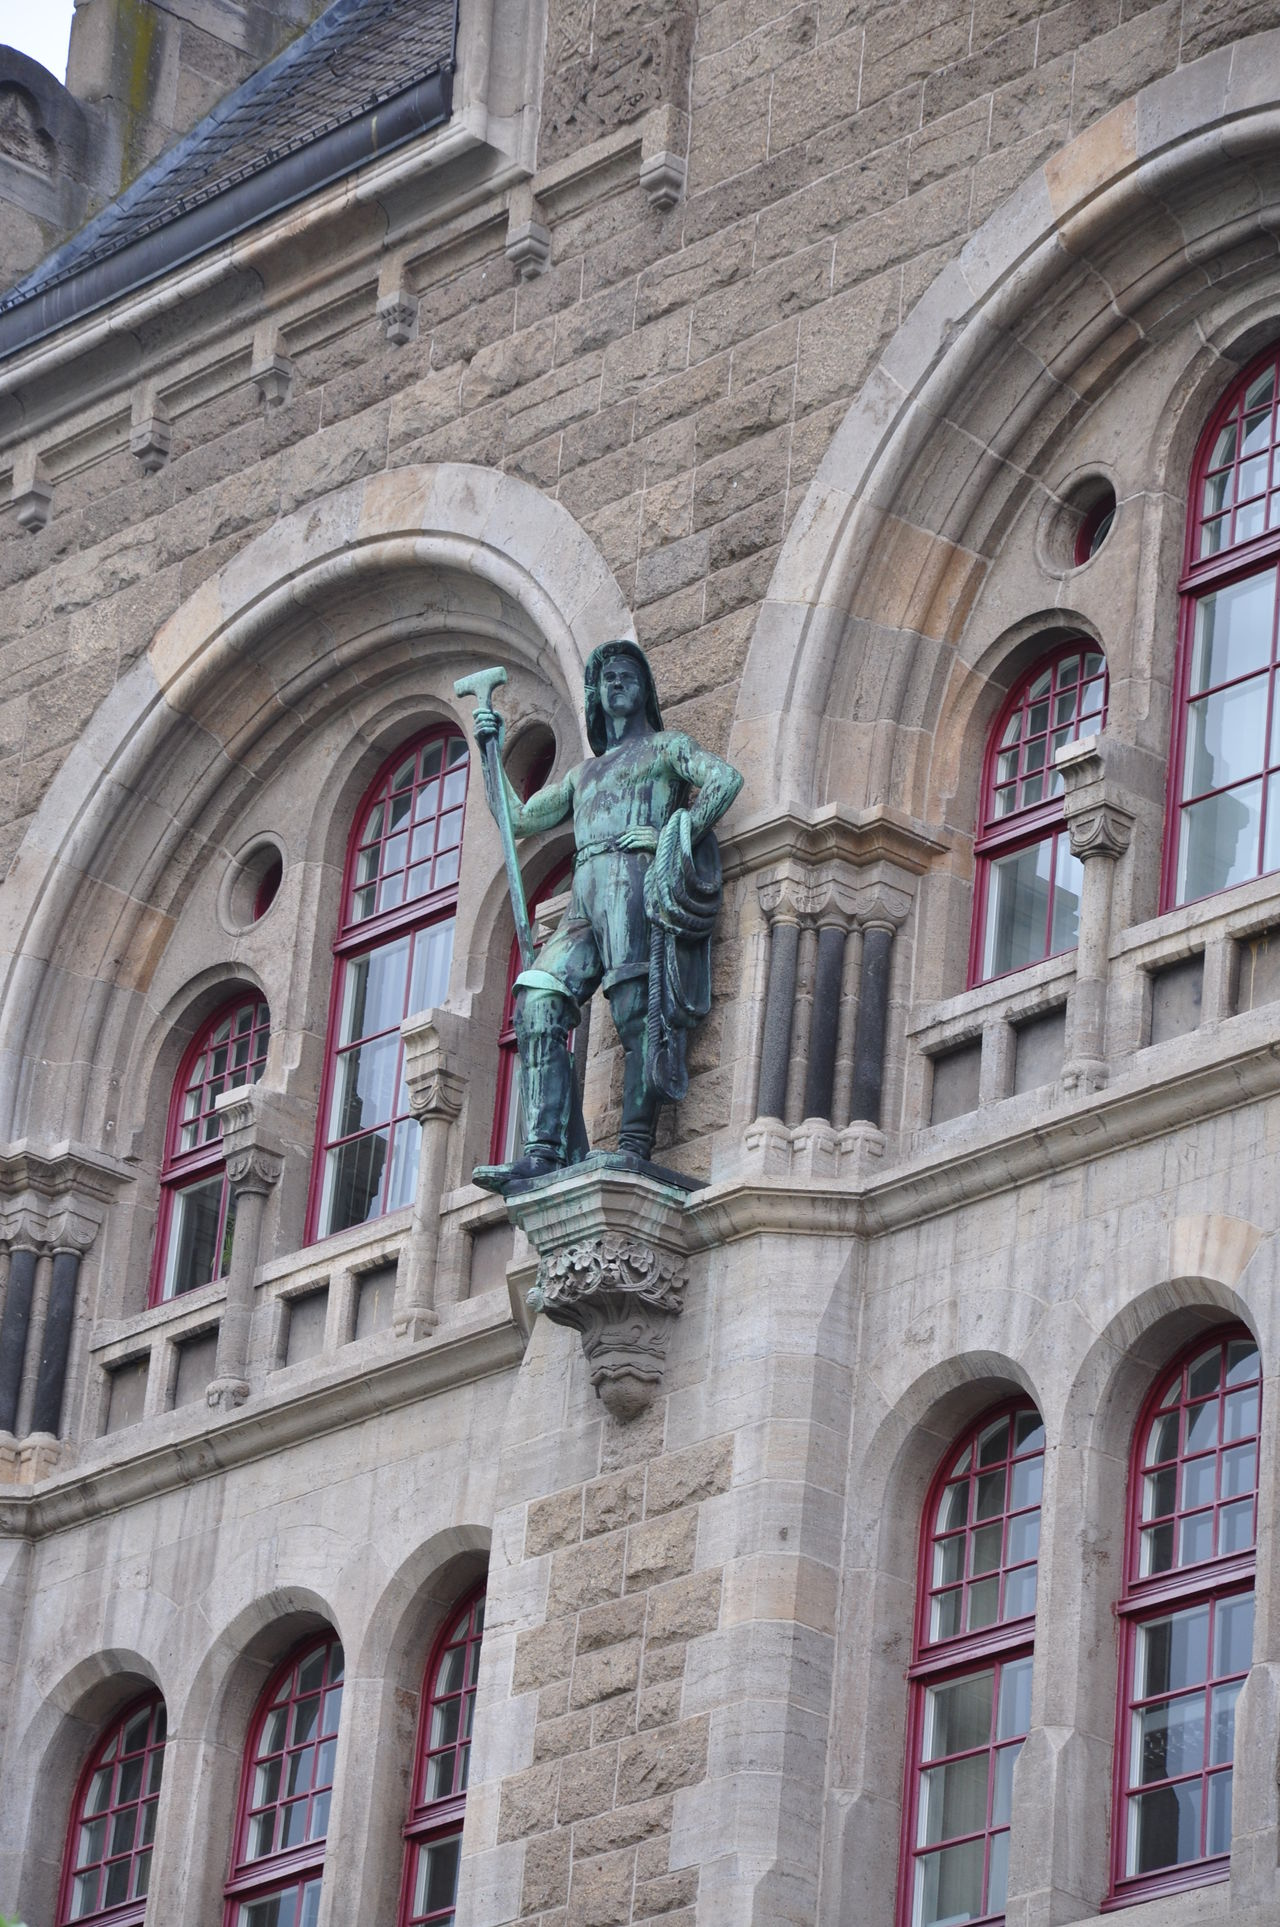 #architecture #building #koblenz #mosel #NoFilter #nofilter#noedit #nopeople #Rhein #statue Building Day Old #historical